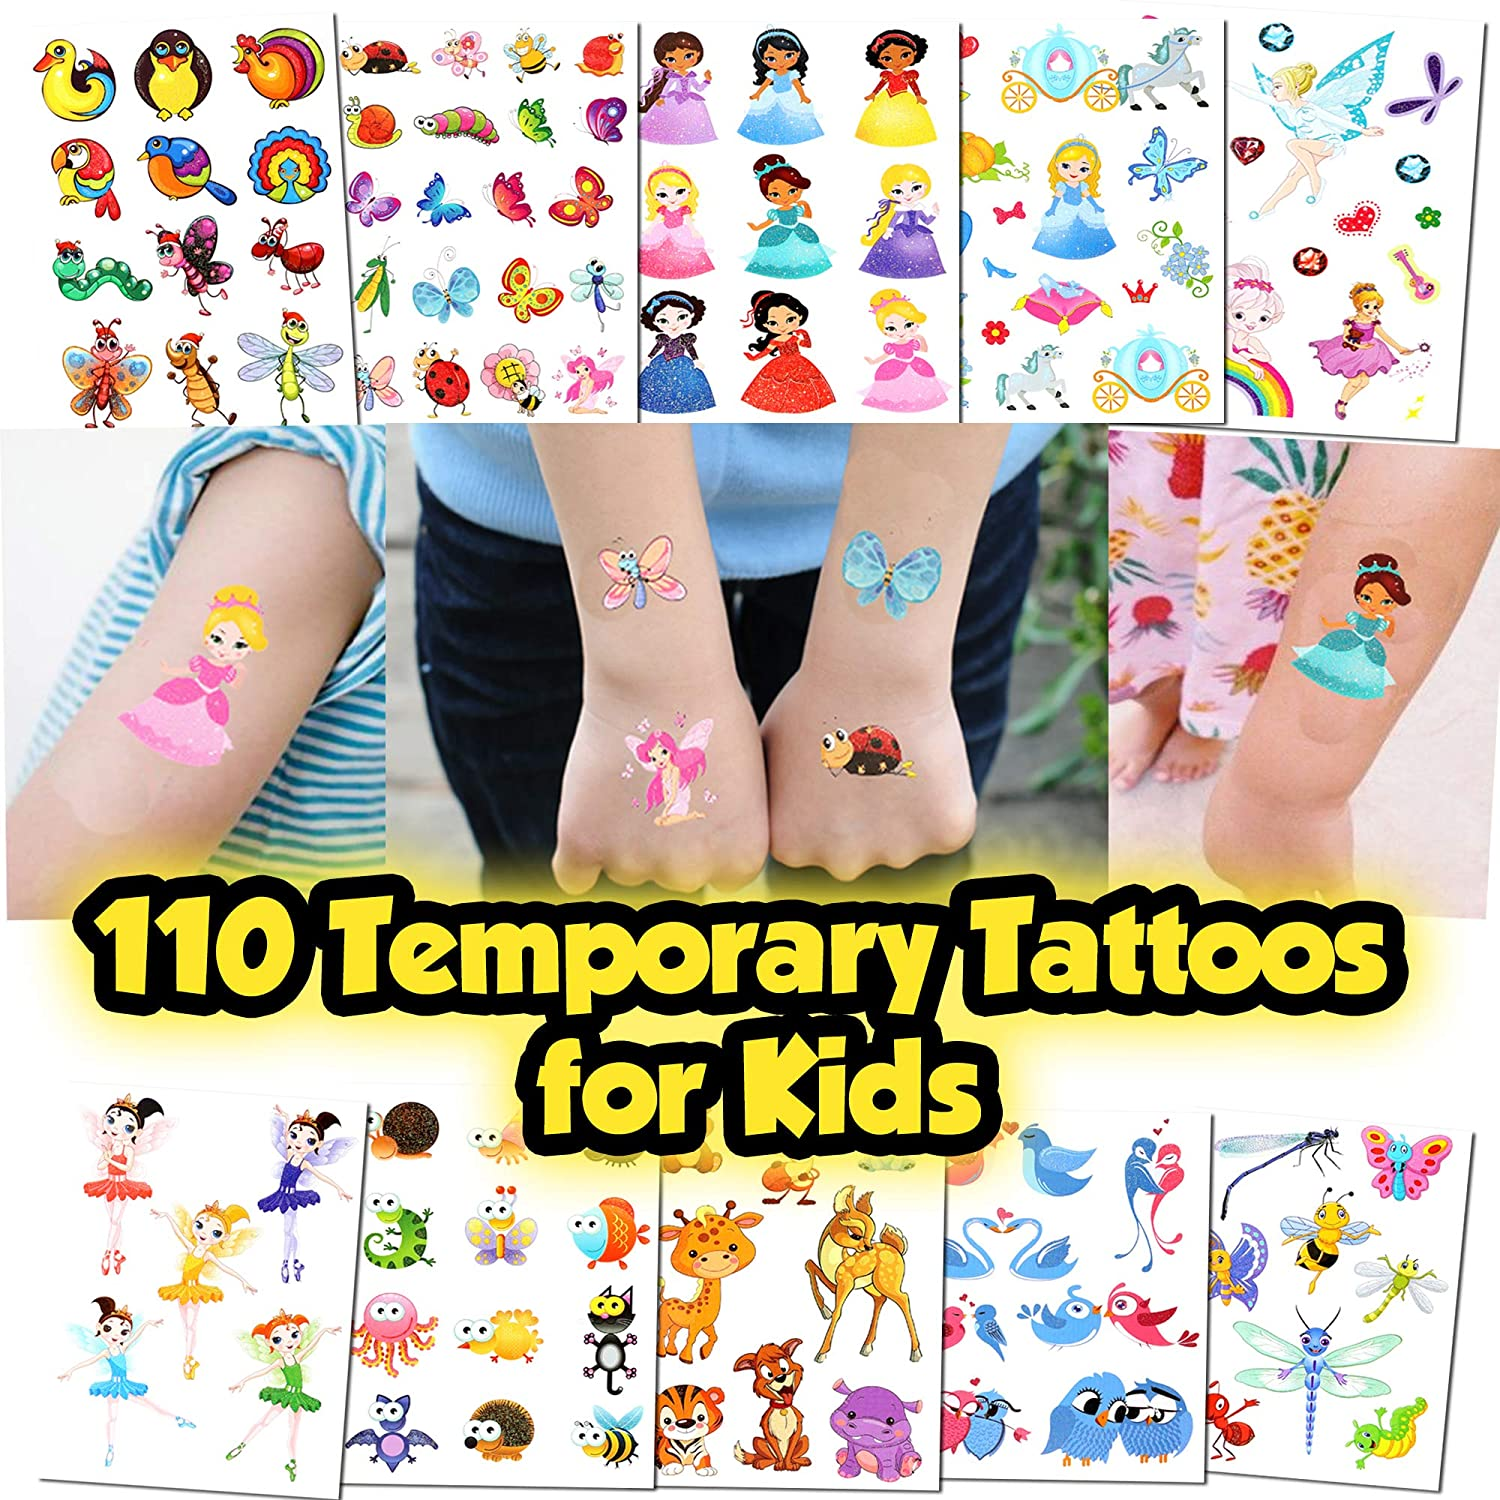 Amazon.com: Kids Temporary Tattoos - More Than 100 Easy-to-Use ...